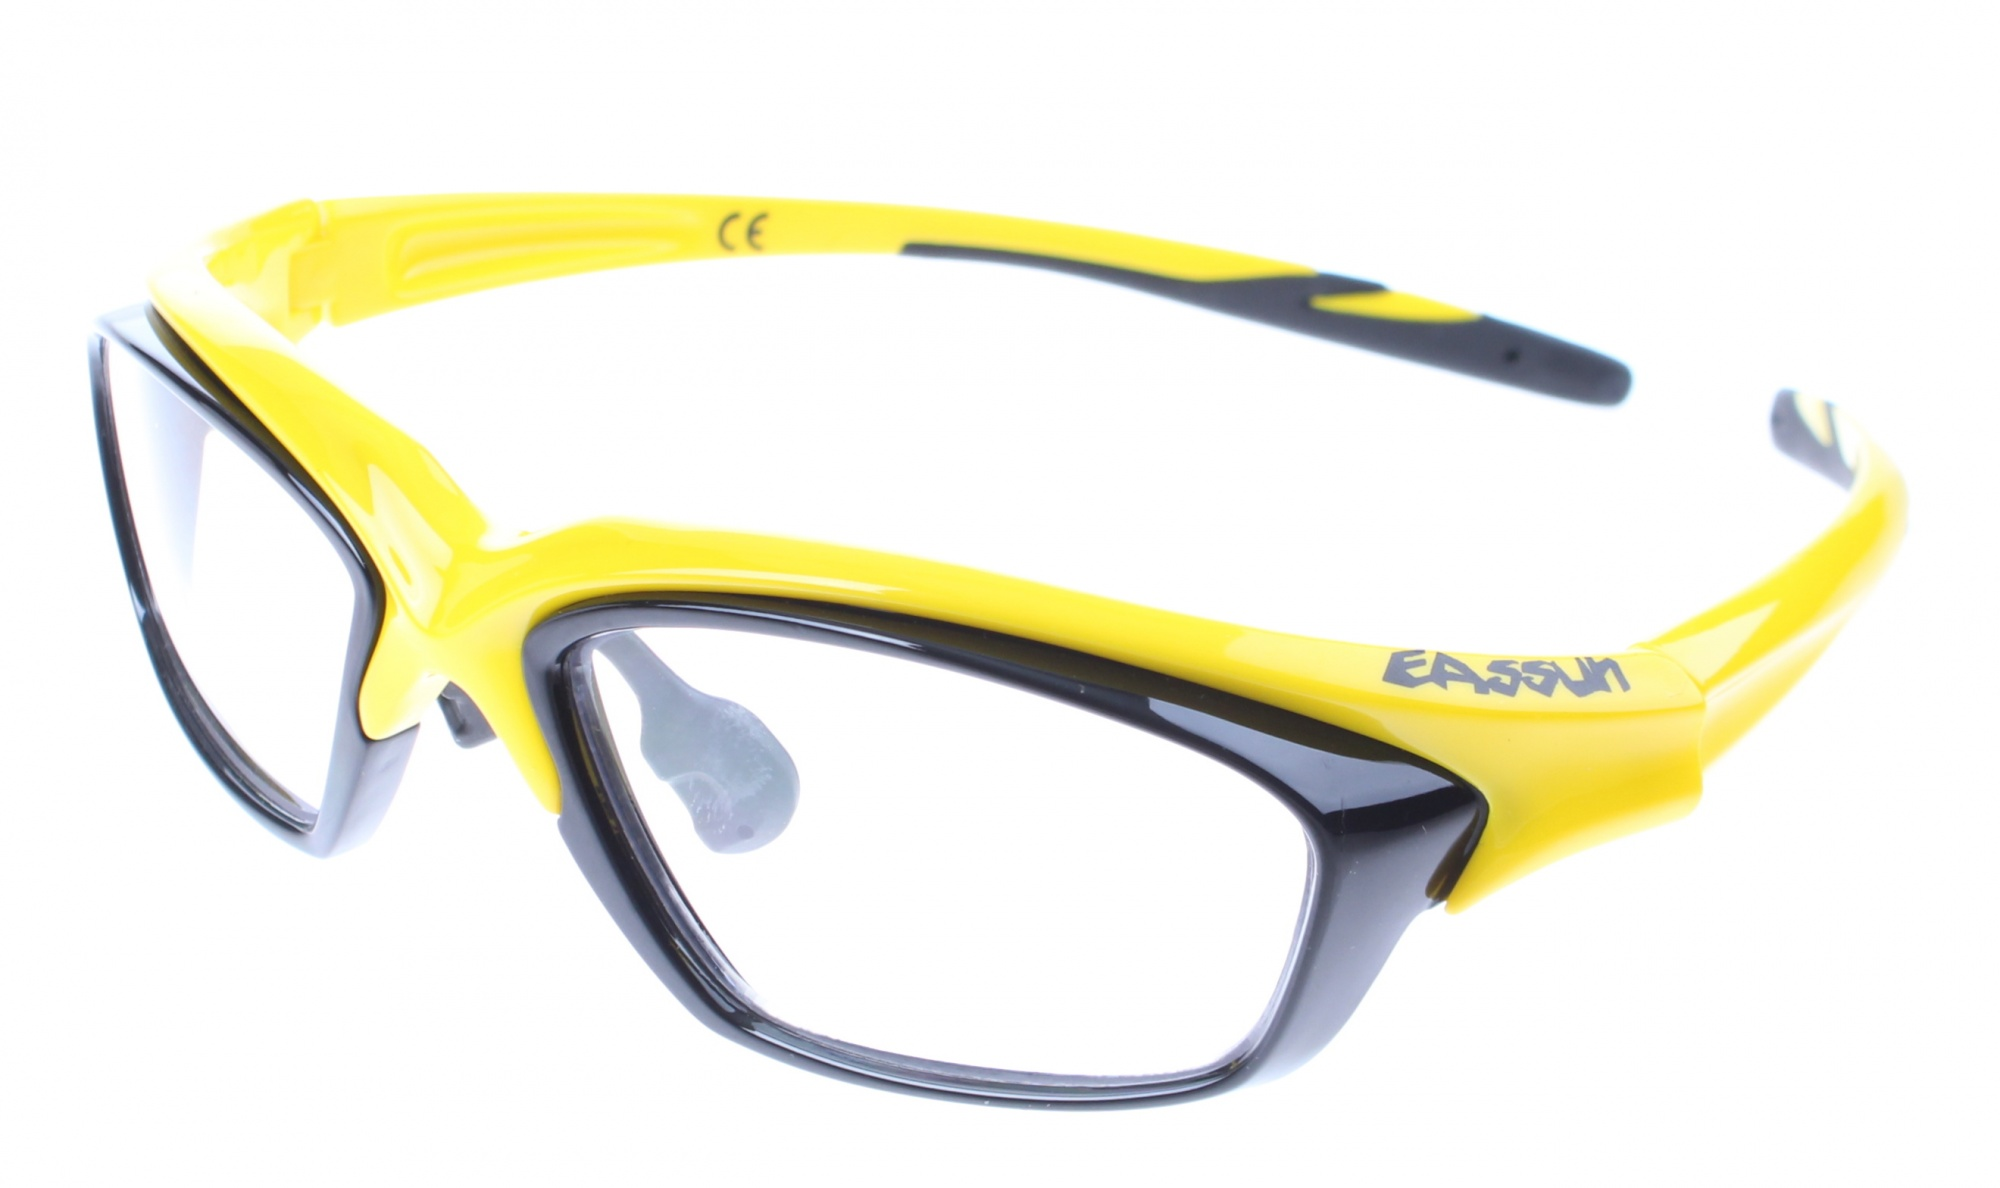 Eassun bicycle glasses RX clear glass frame yellow / black - Giga ...